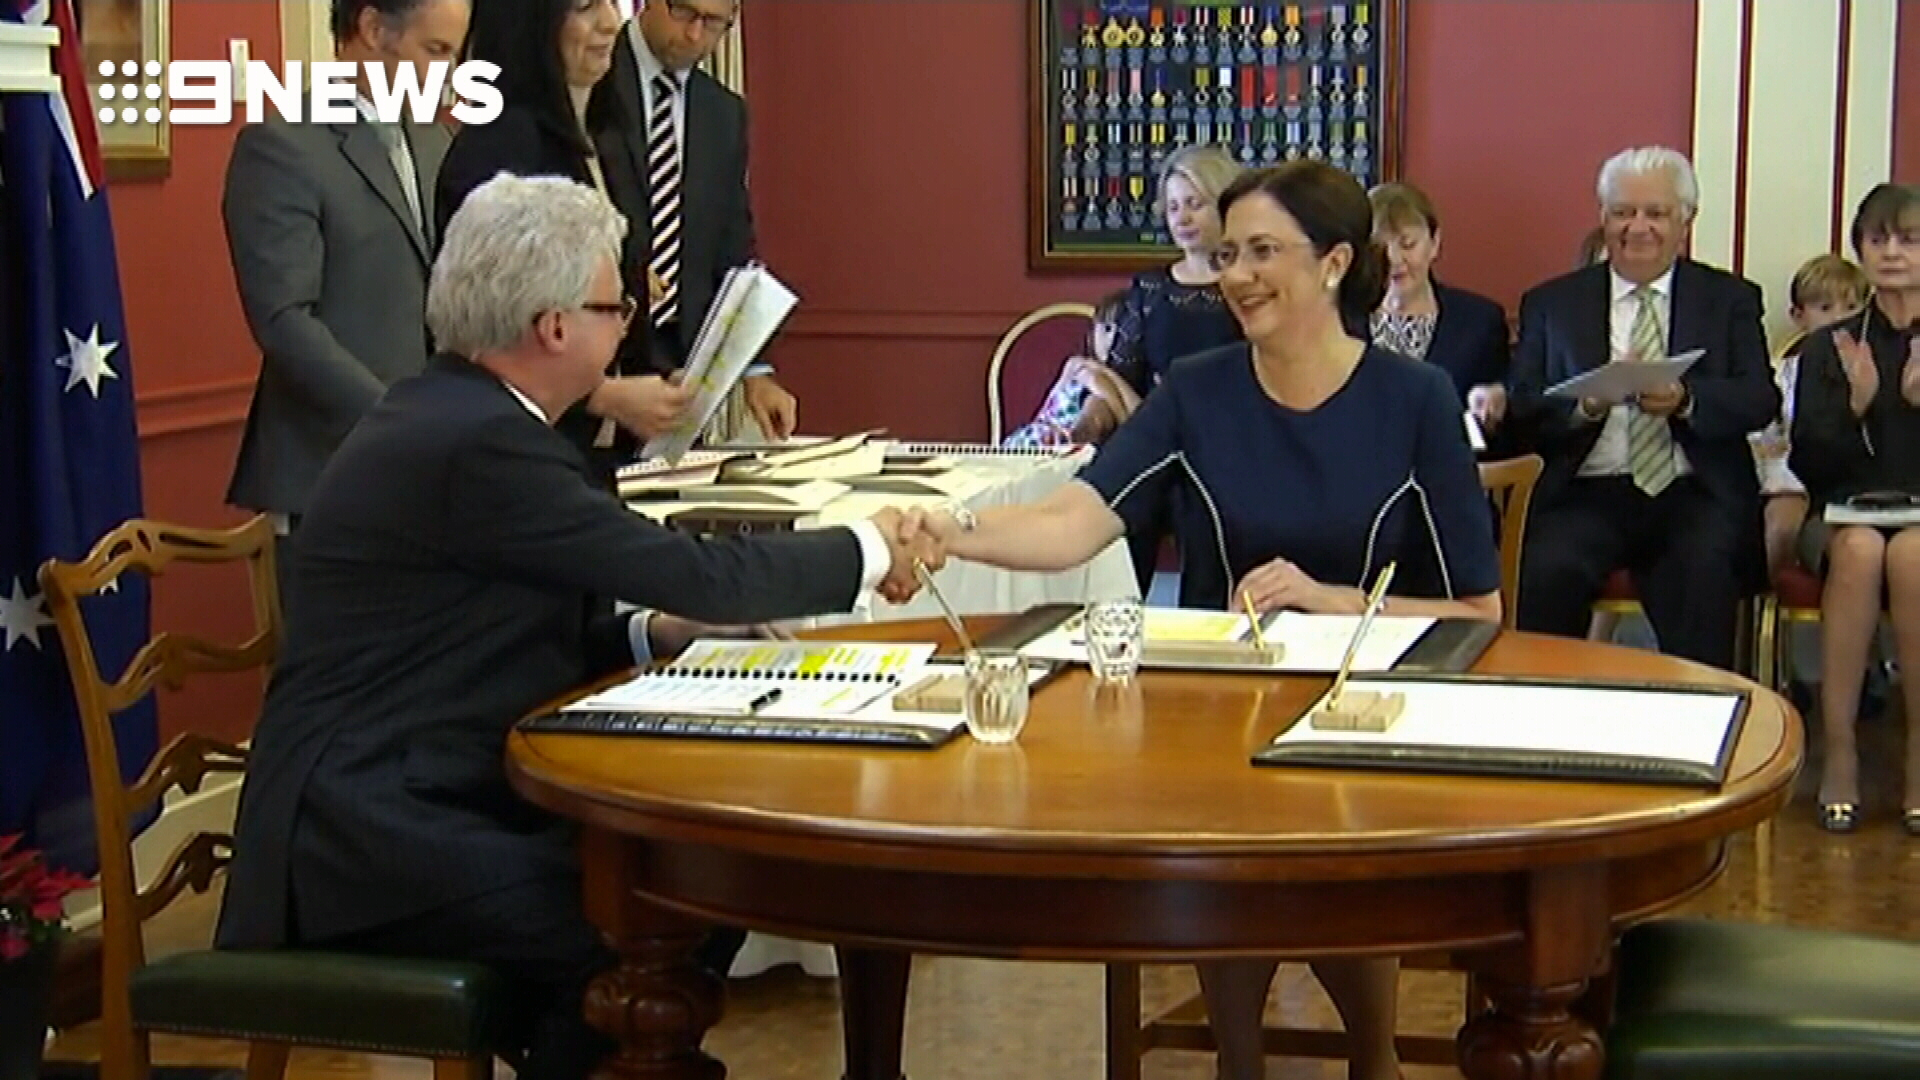 Palaszczuk's new cabinet sworn in